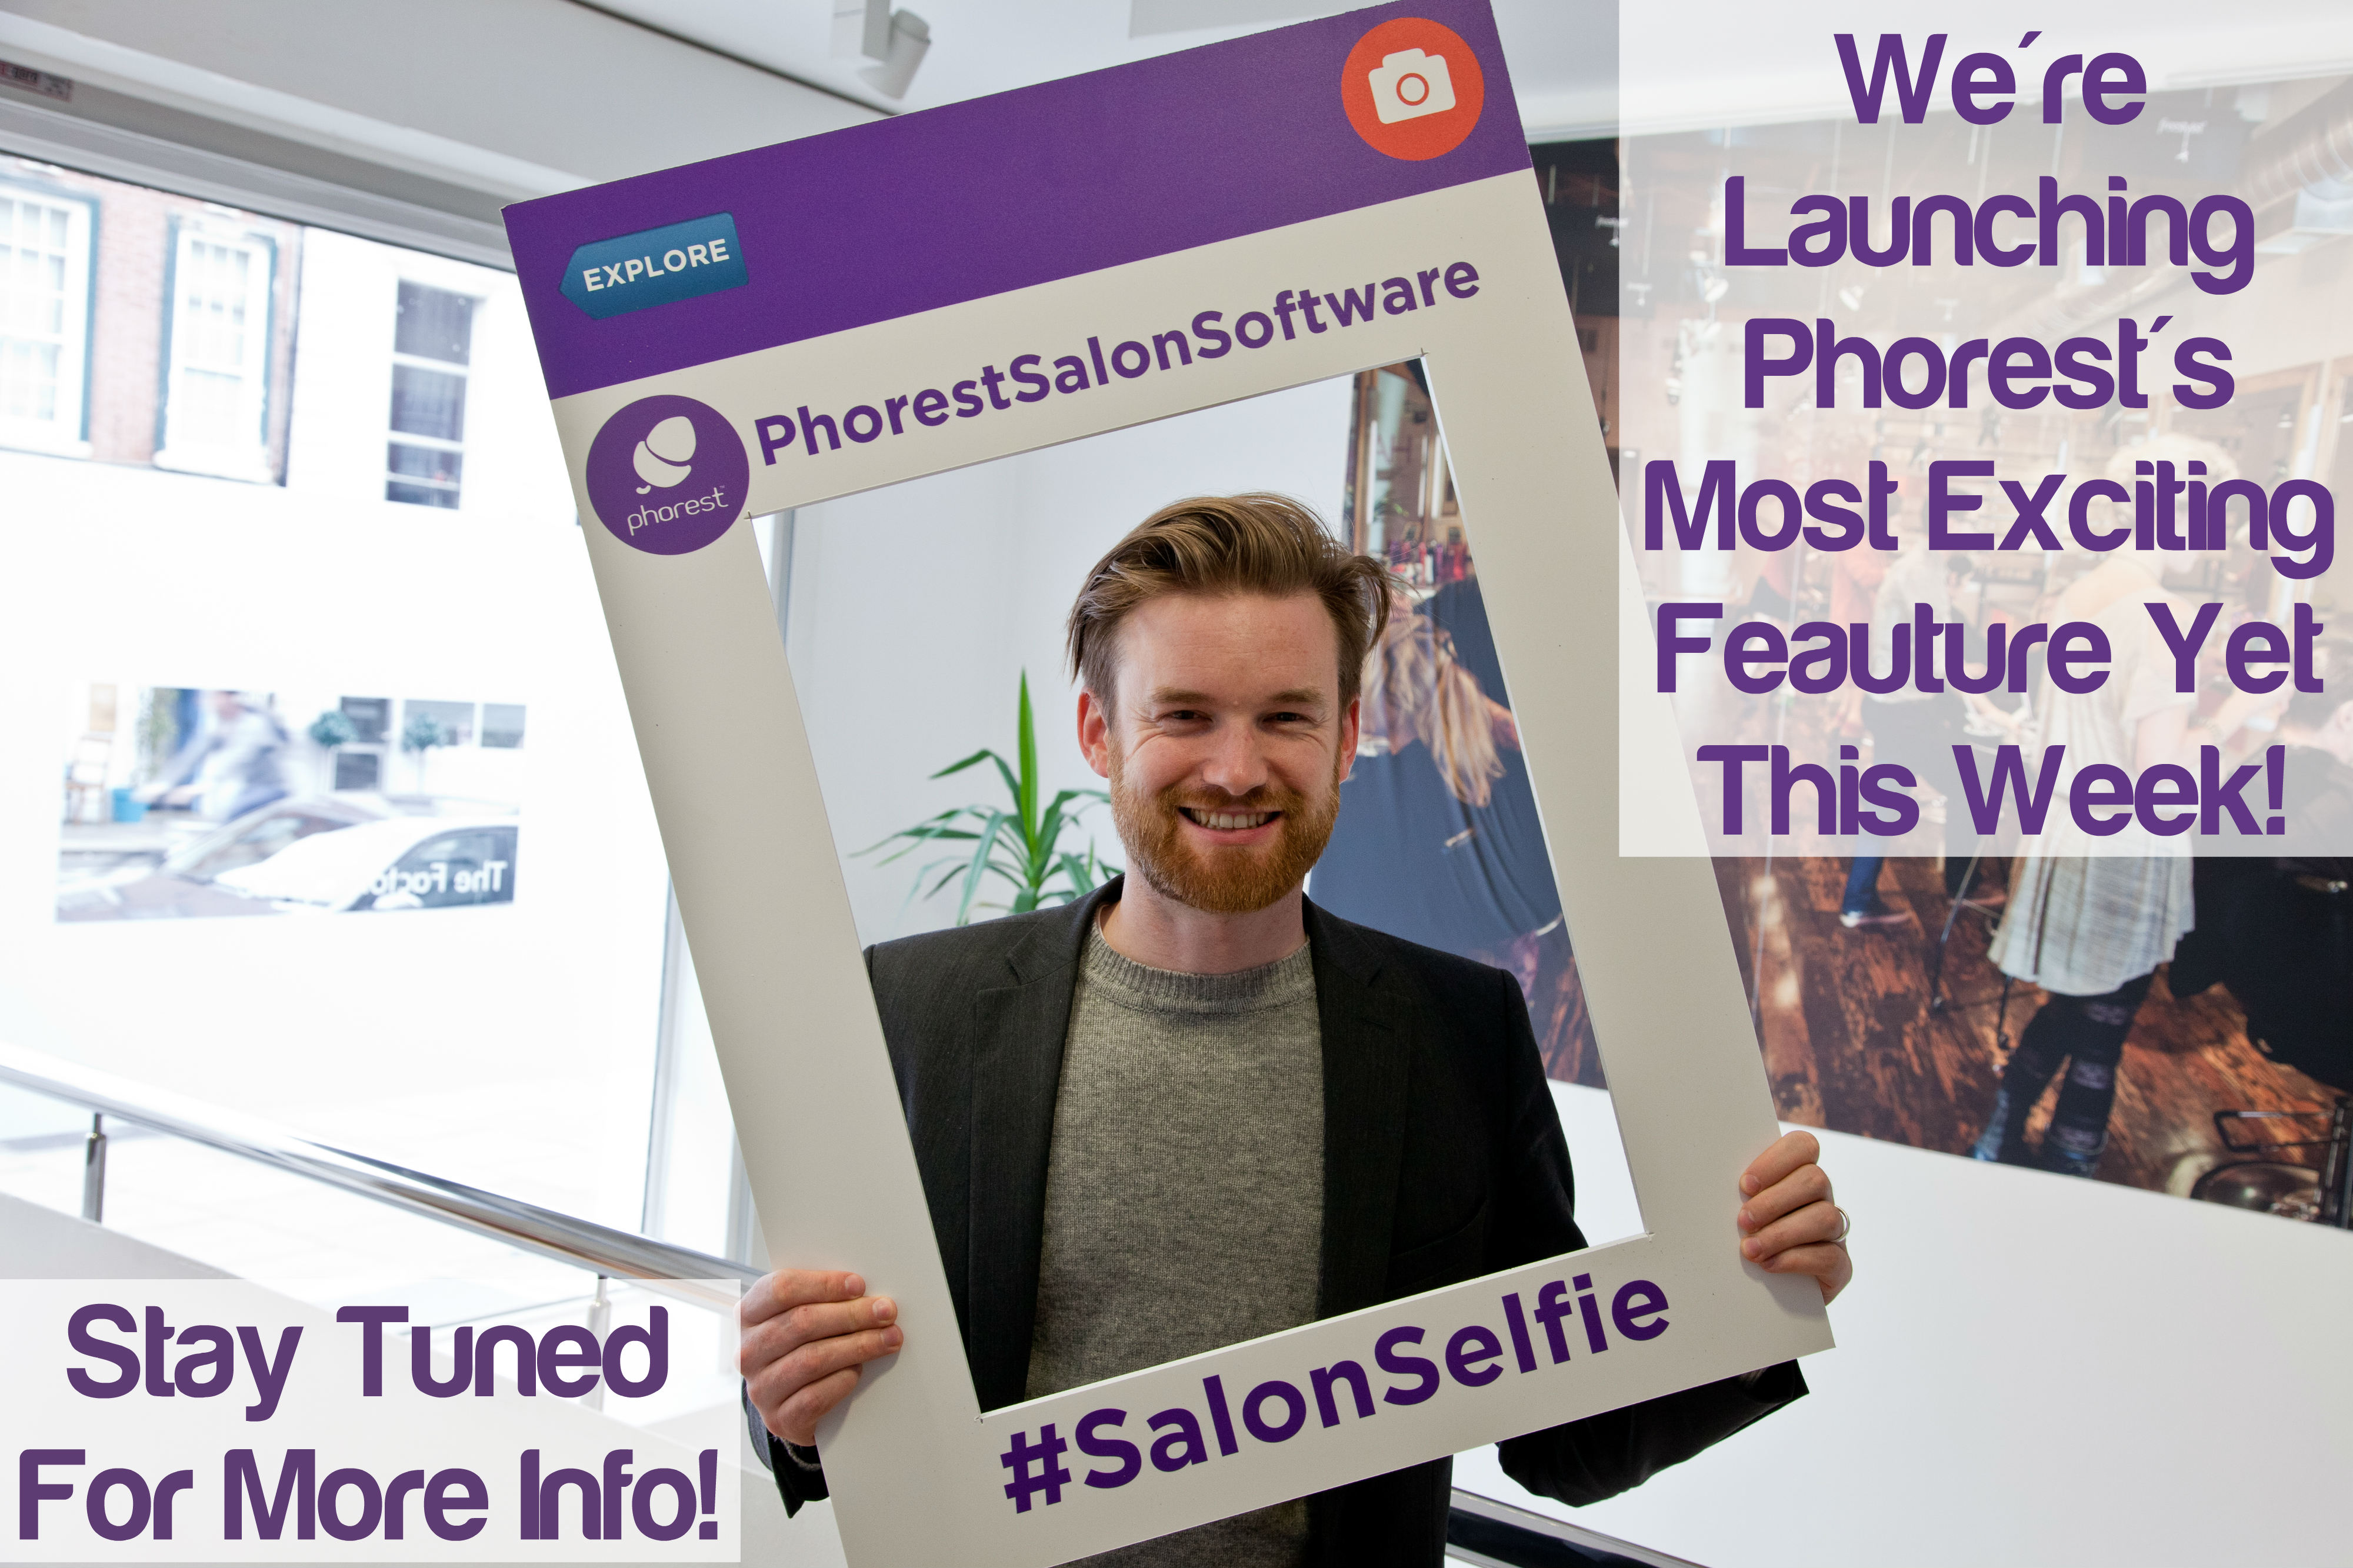 # SalonSelfie – Phorest Launches its Most Exciting Feature in 10 Years